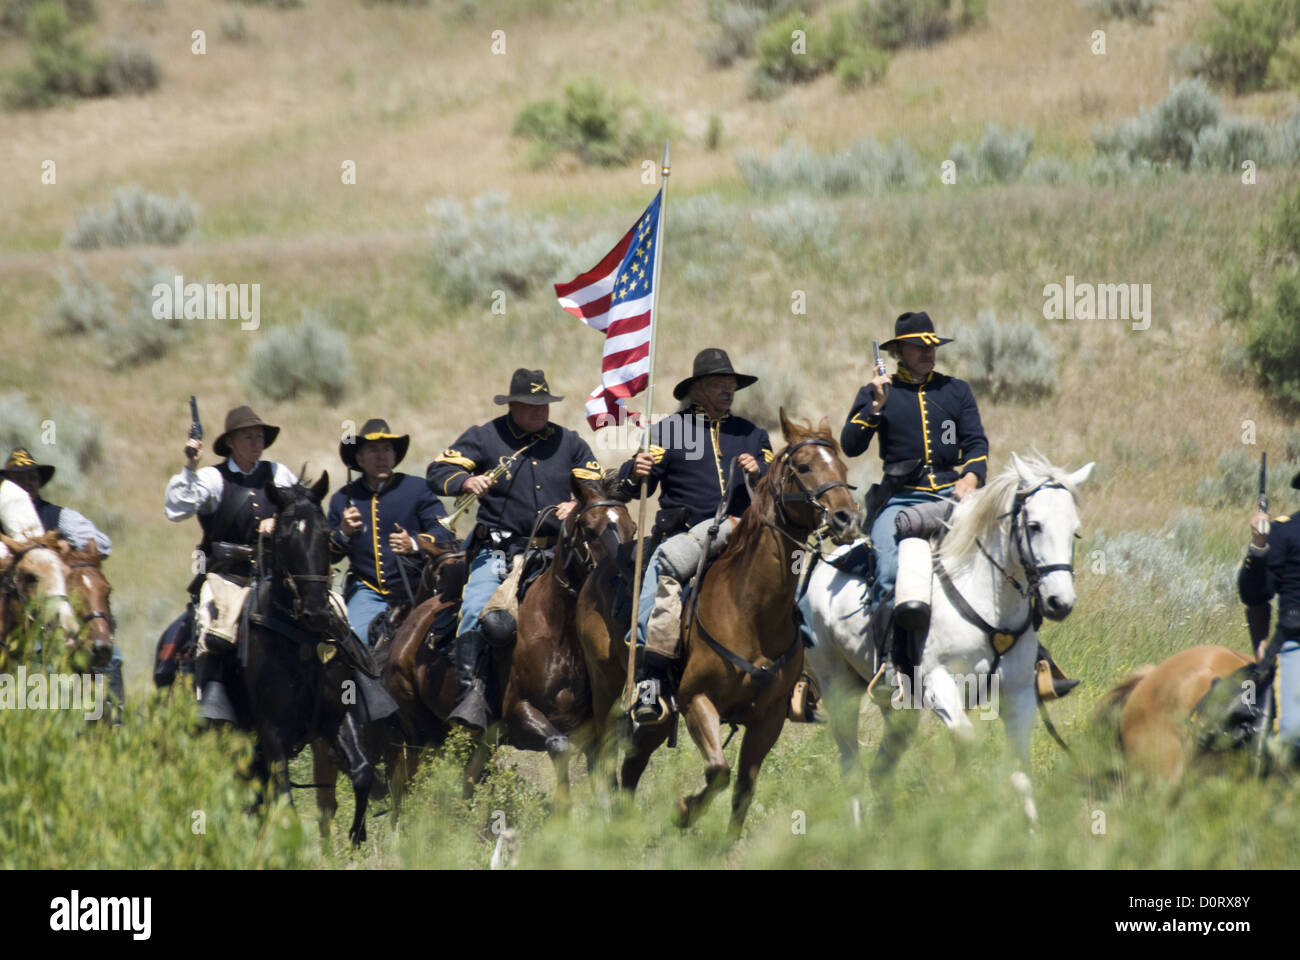 Charge of the US Cavalry - Stock Image